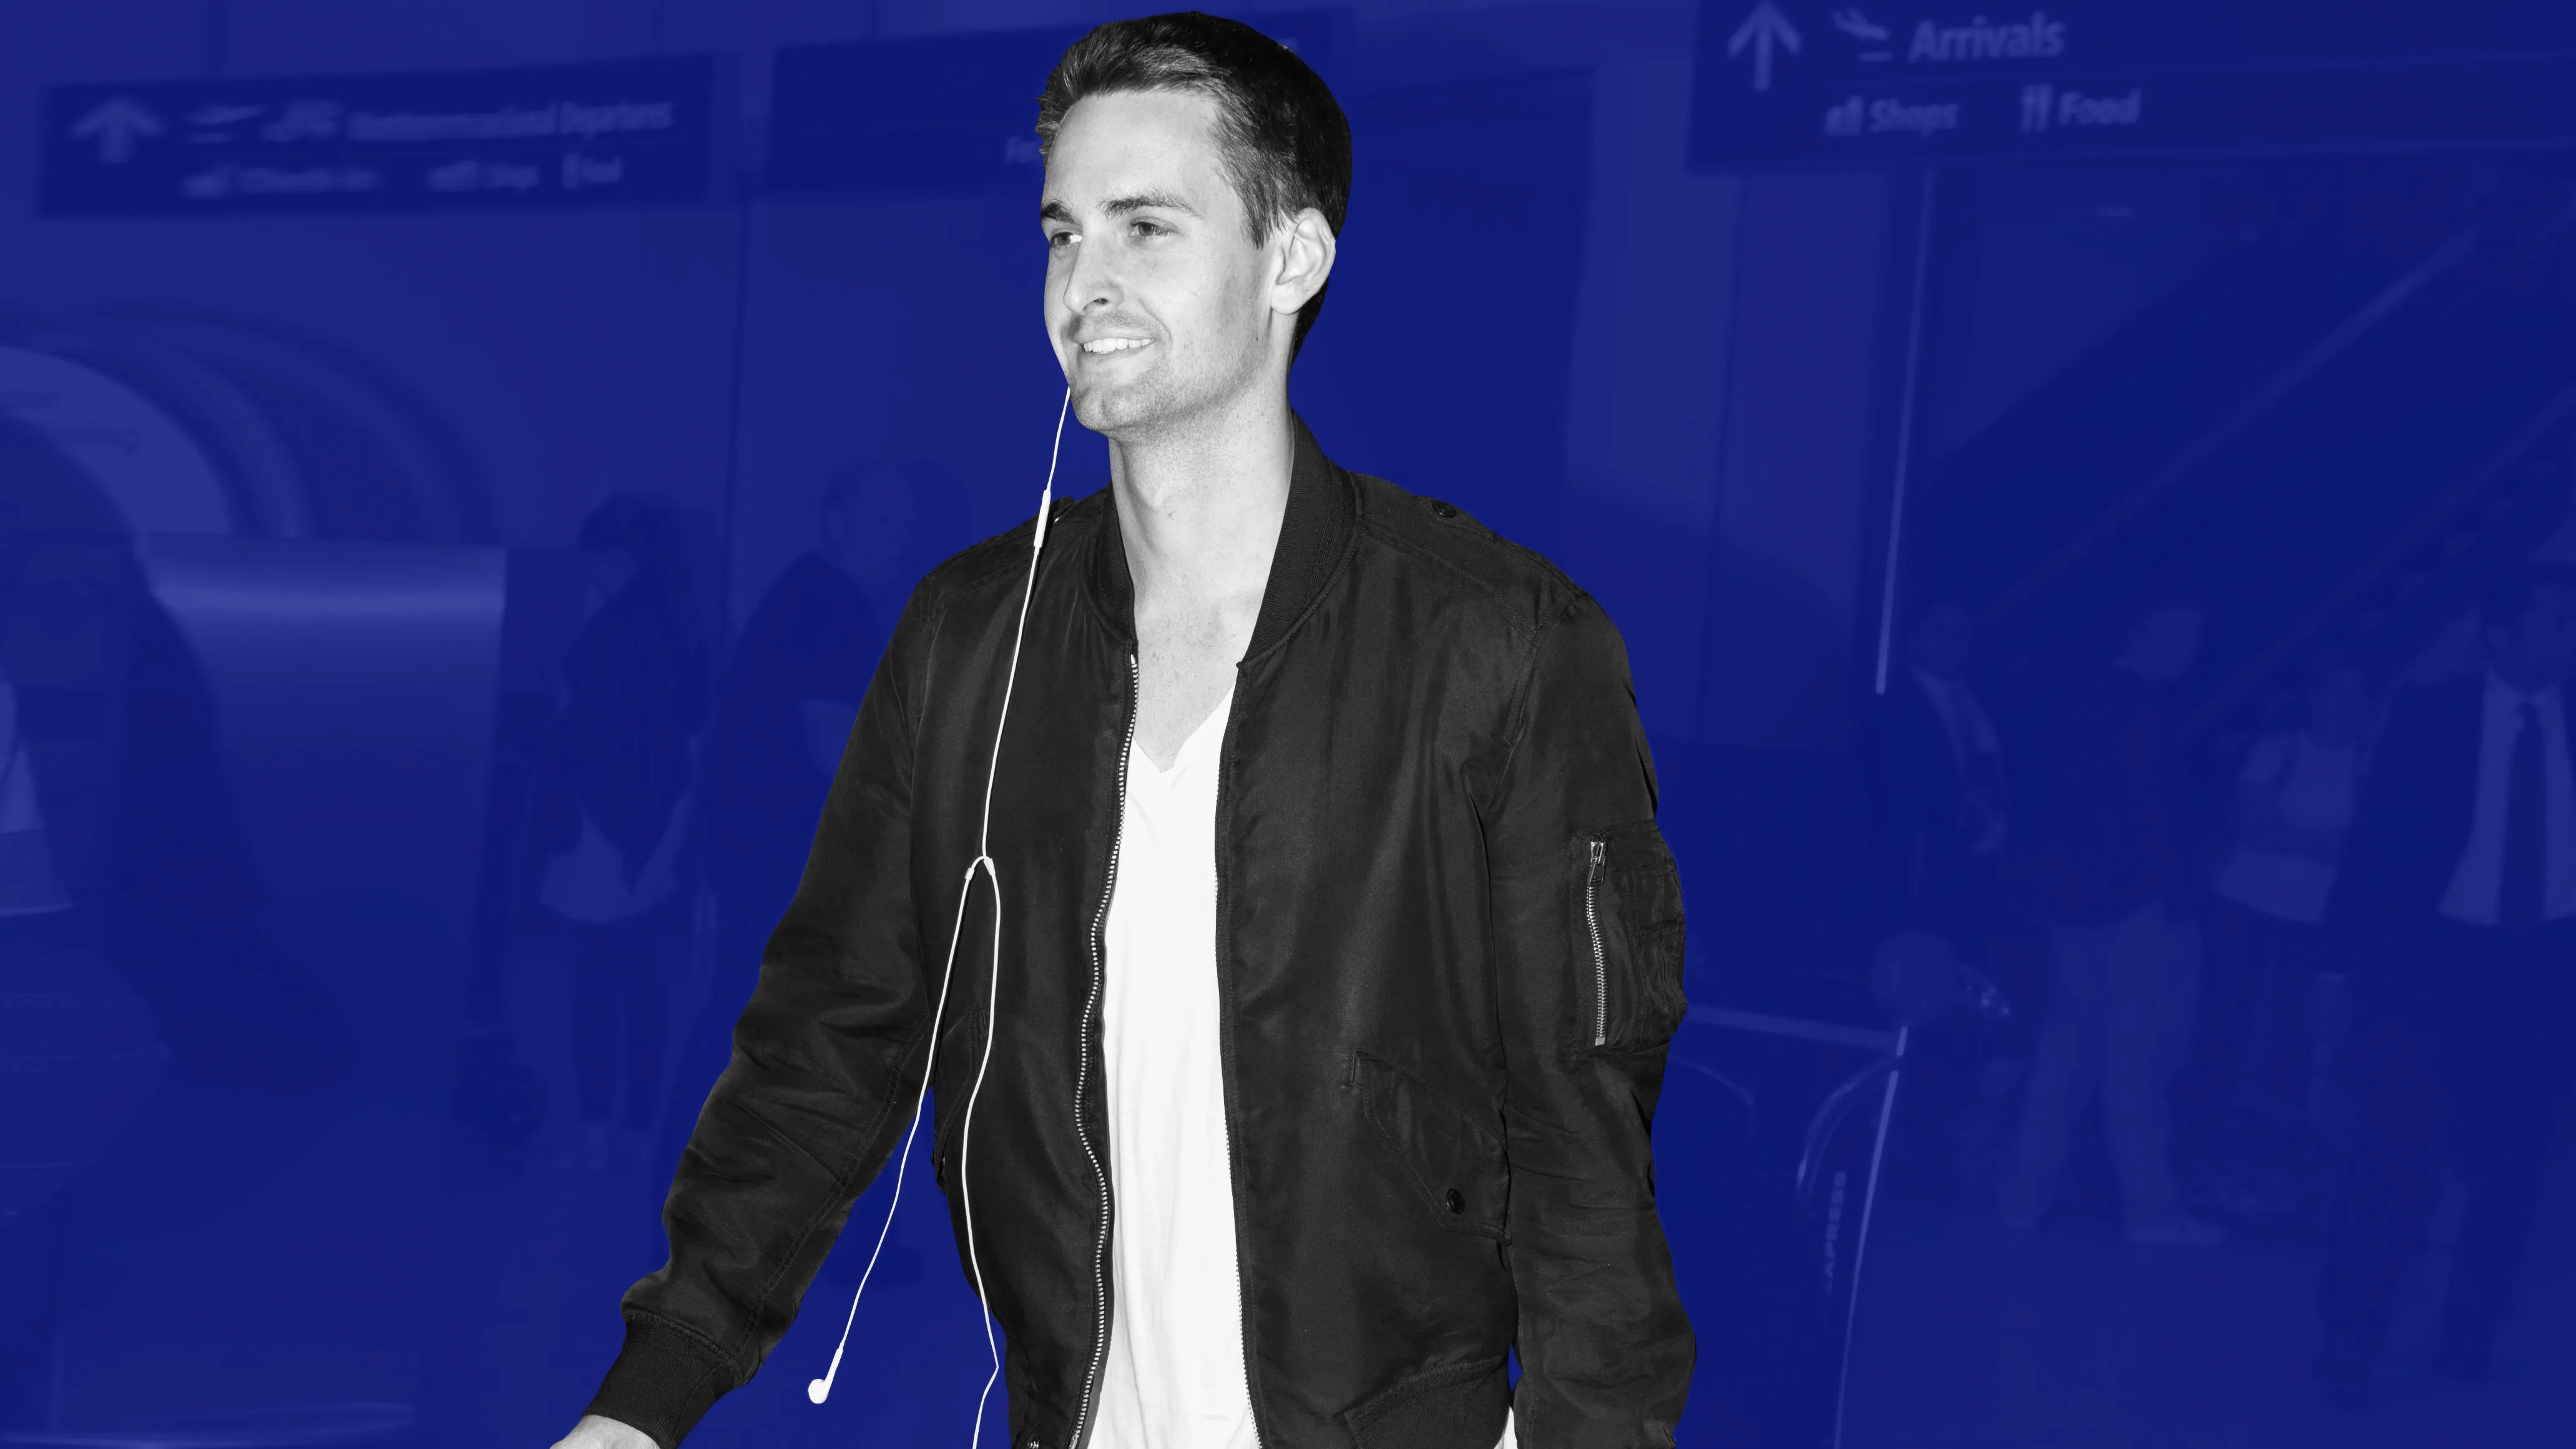 Spiegel. How Snapchat Ceo Evan Spiegel Aces Airport Style Gq